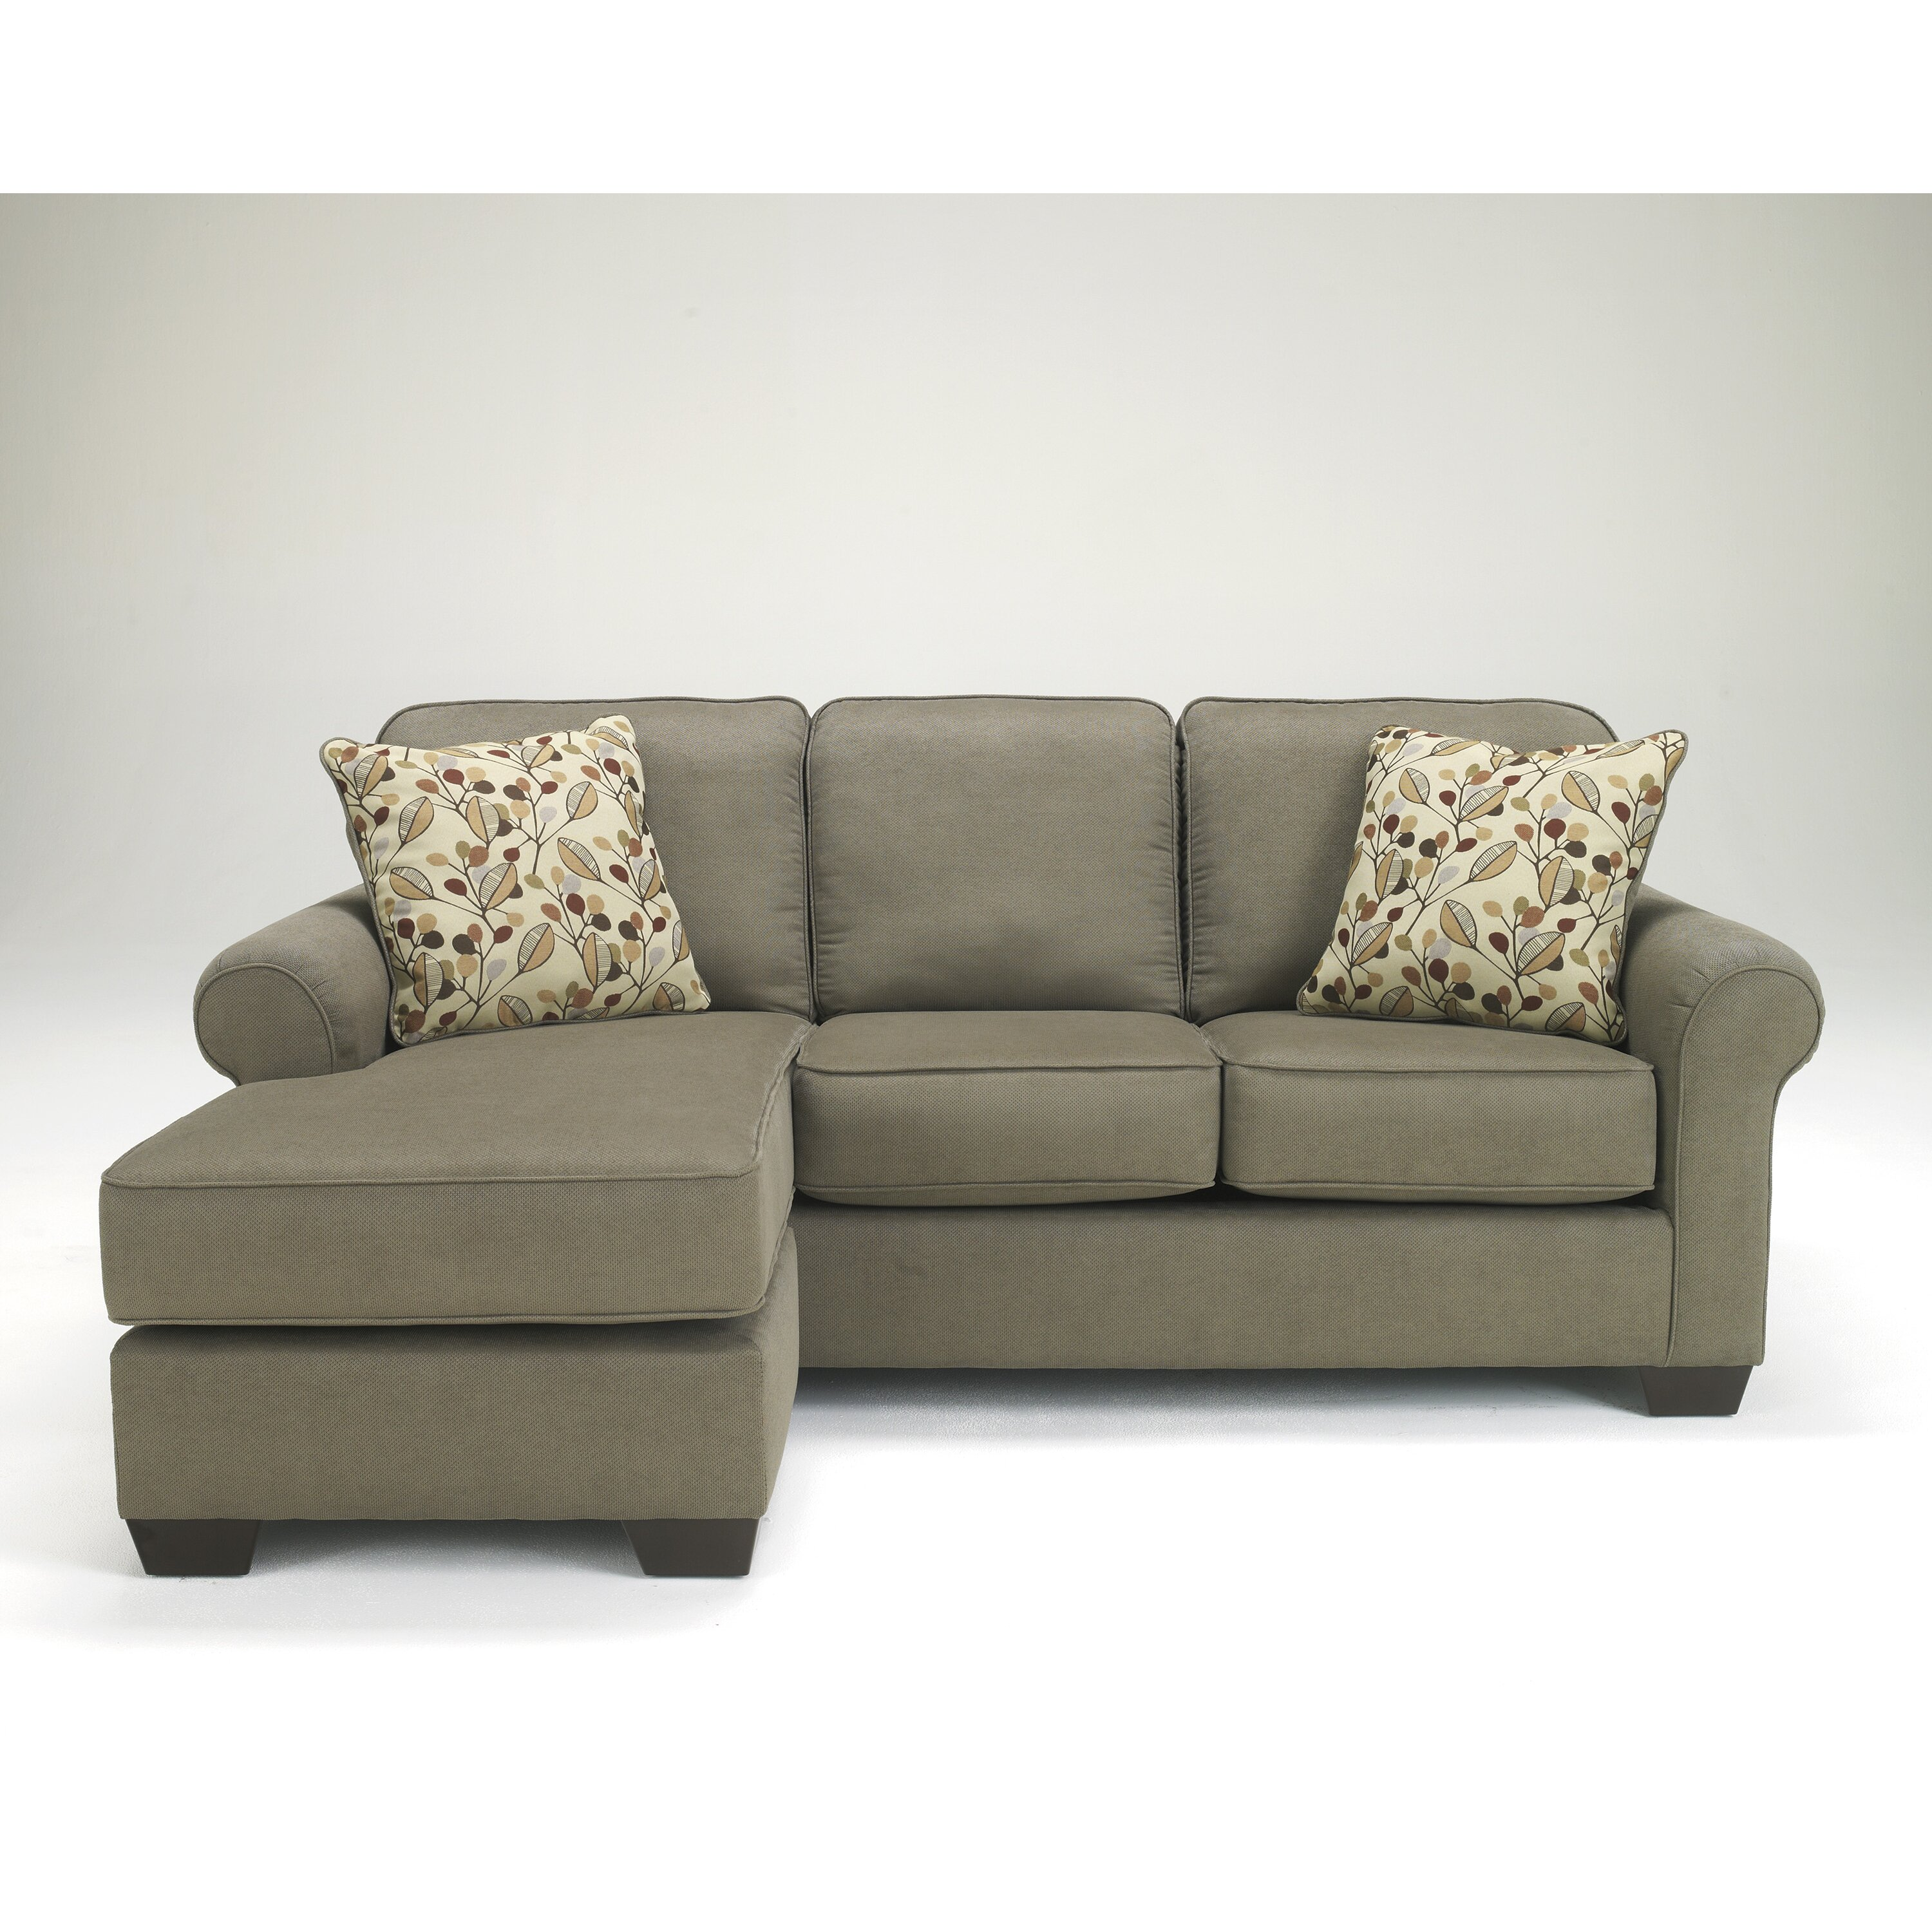 Benchcraft Danely Chaise Sofa Reviews Wayfair